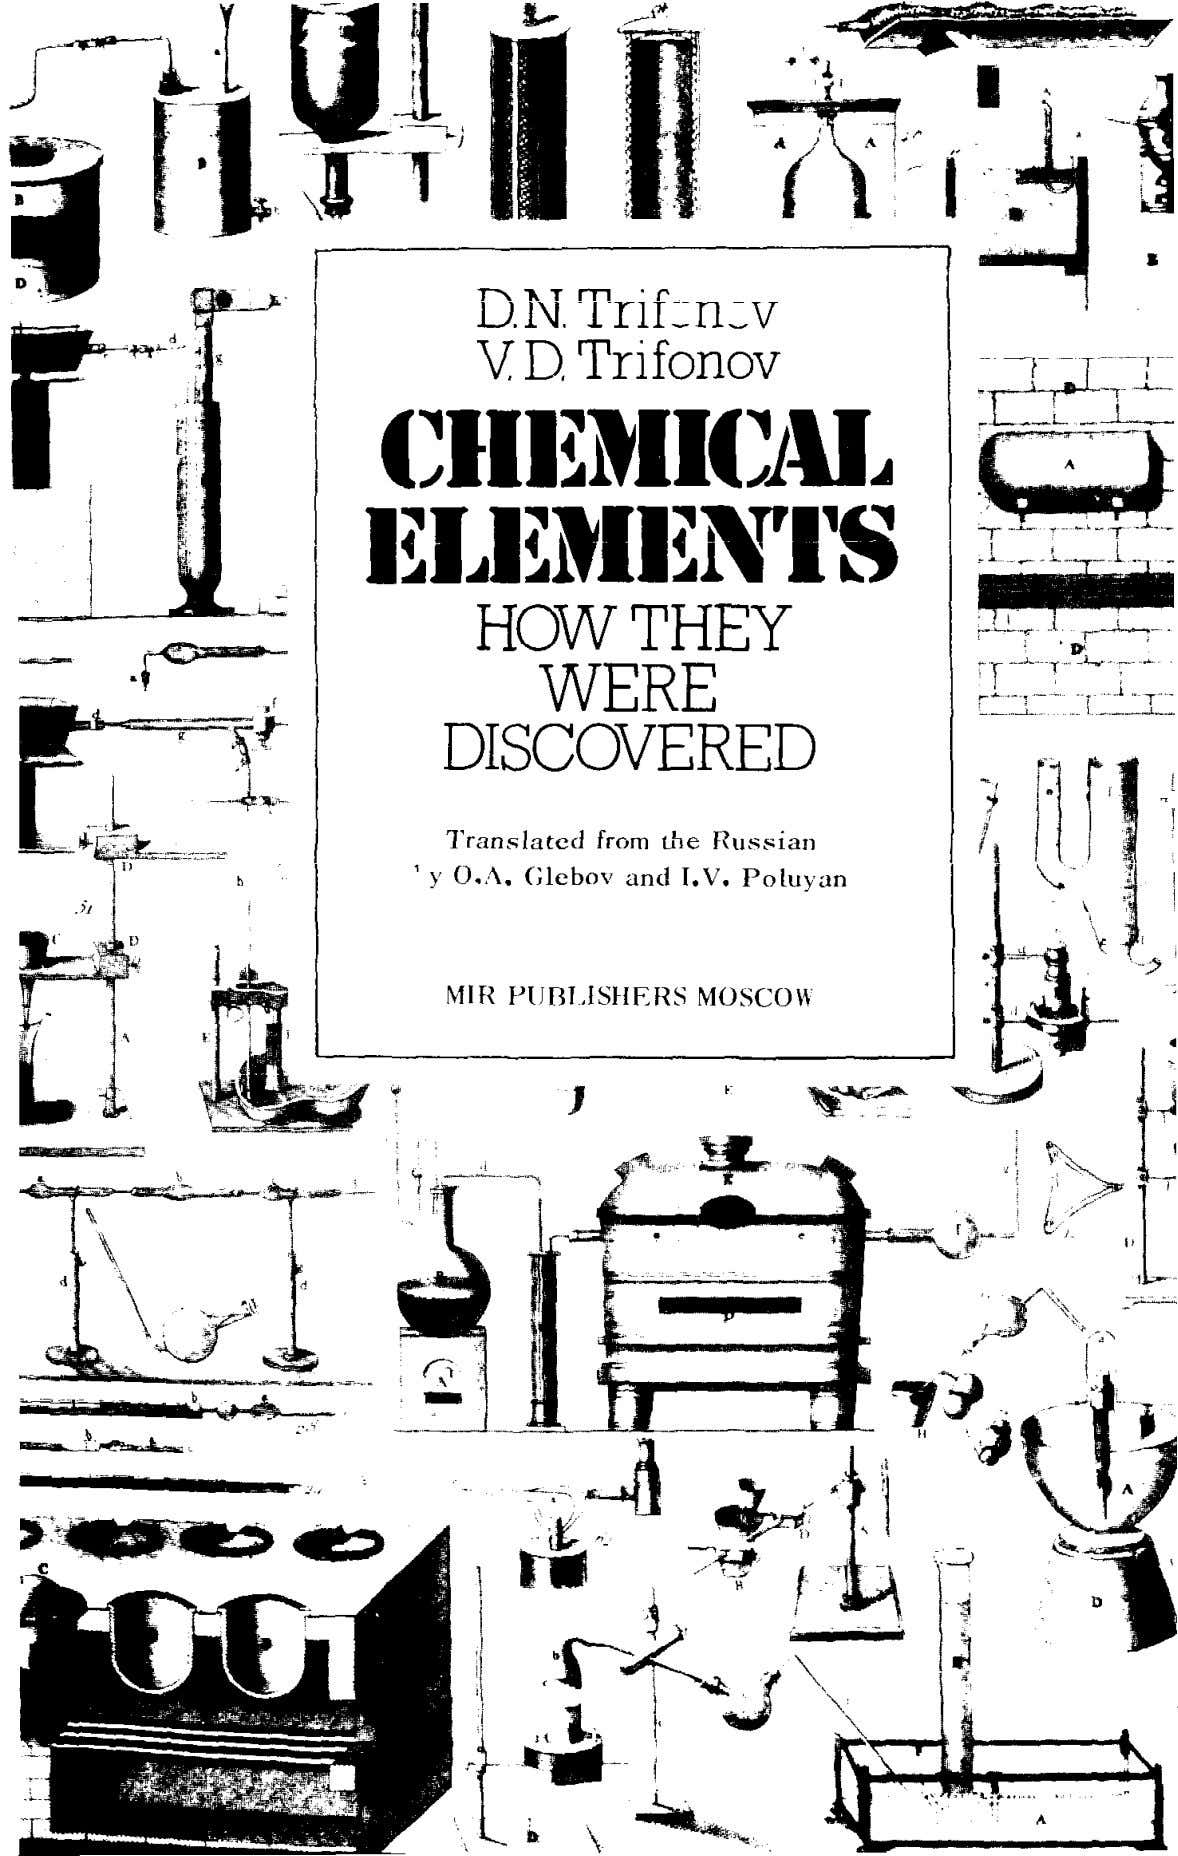 D.N. Trifonov VD, Trifonov CHEMICAL ELEMENTS HOW THEY WERE DISCOVERED Translated from the Russian by O.A